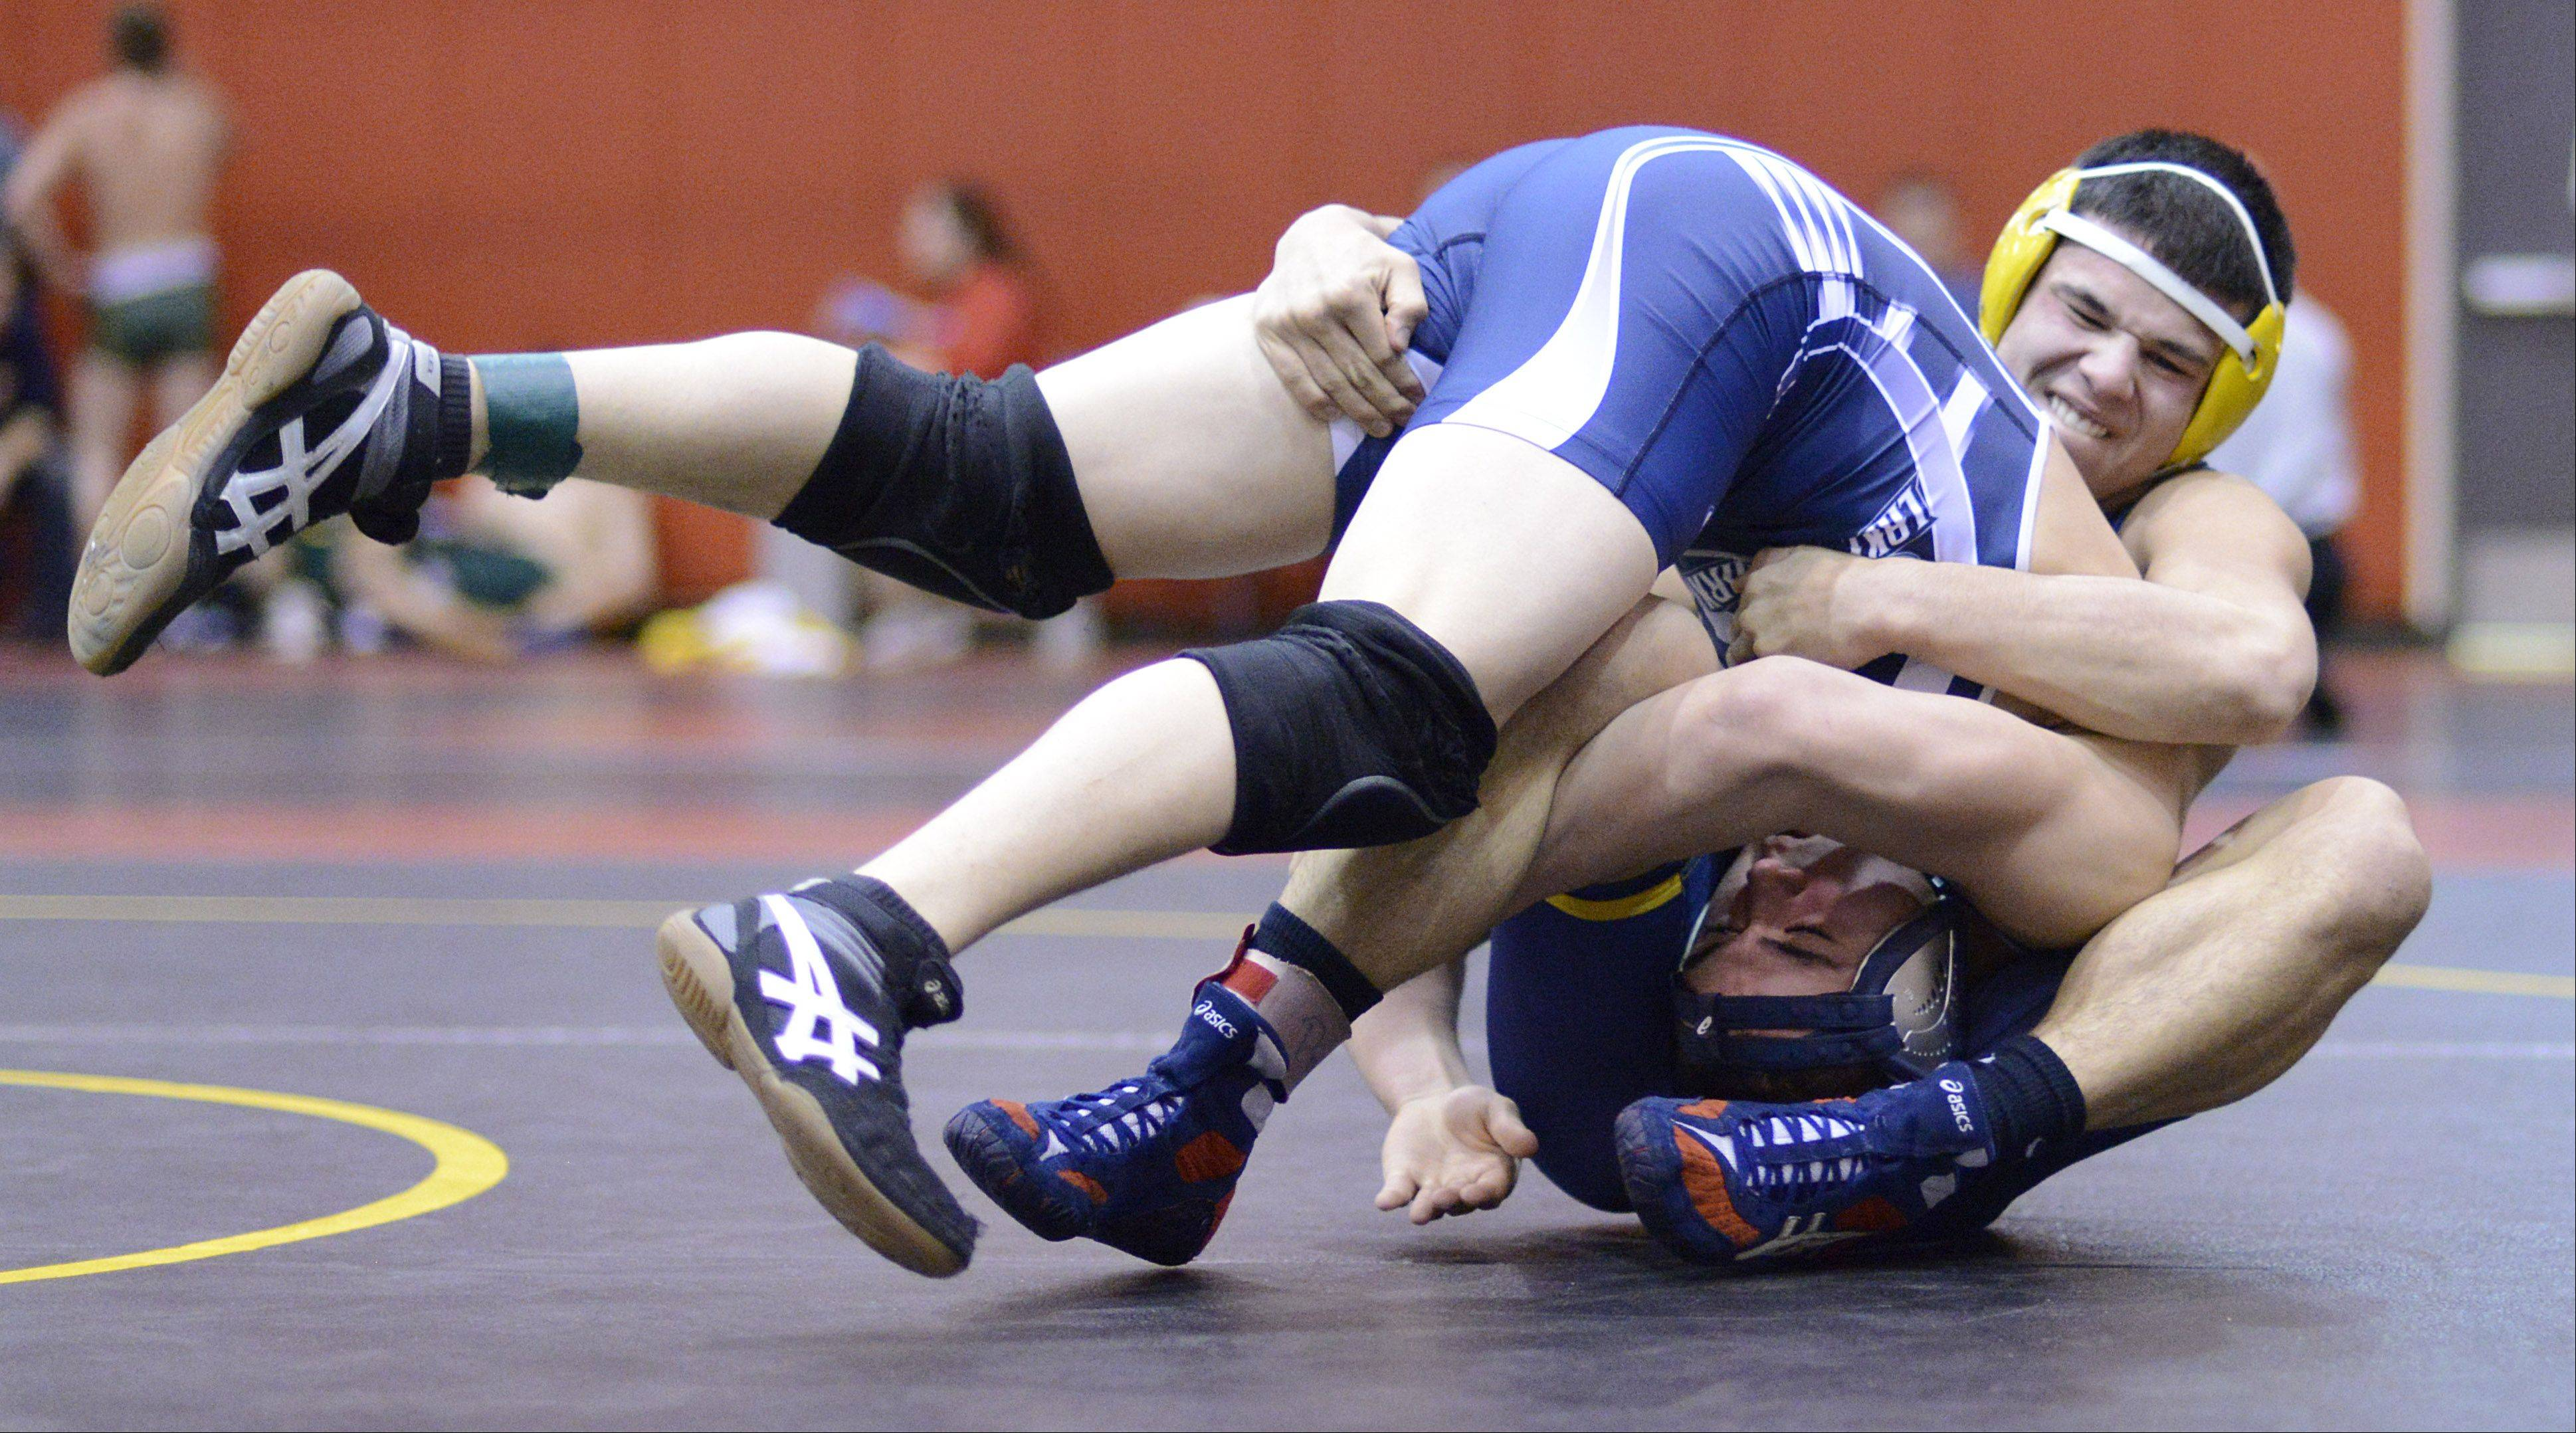 Neuqua Valley's Brent Lindenman and Lake Park's Henry Stoever wrestle in the 170-pound match Saturday.